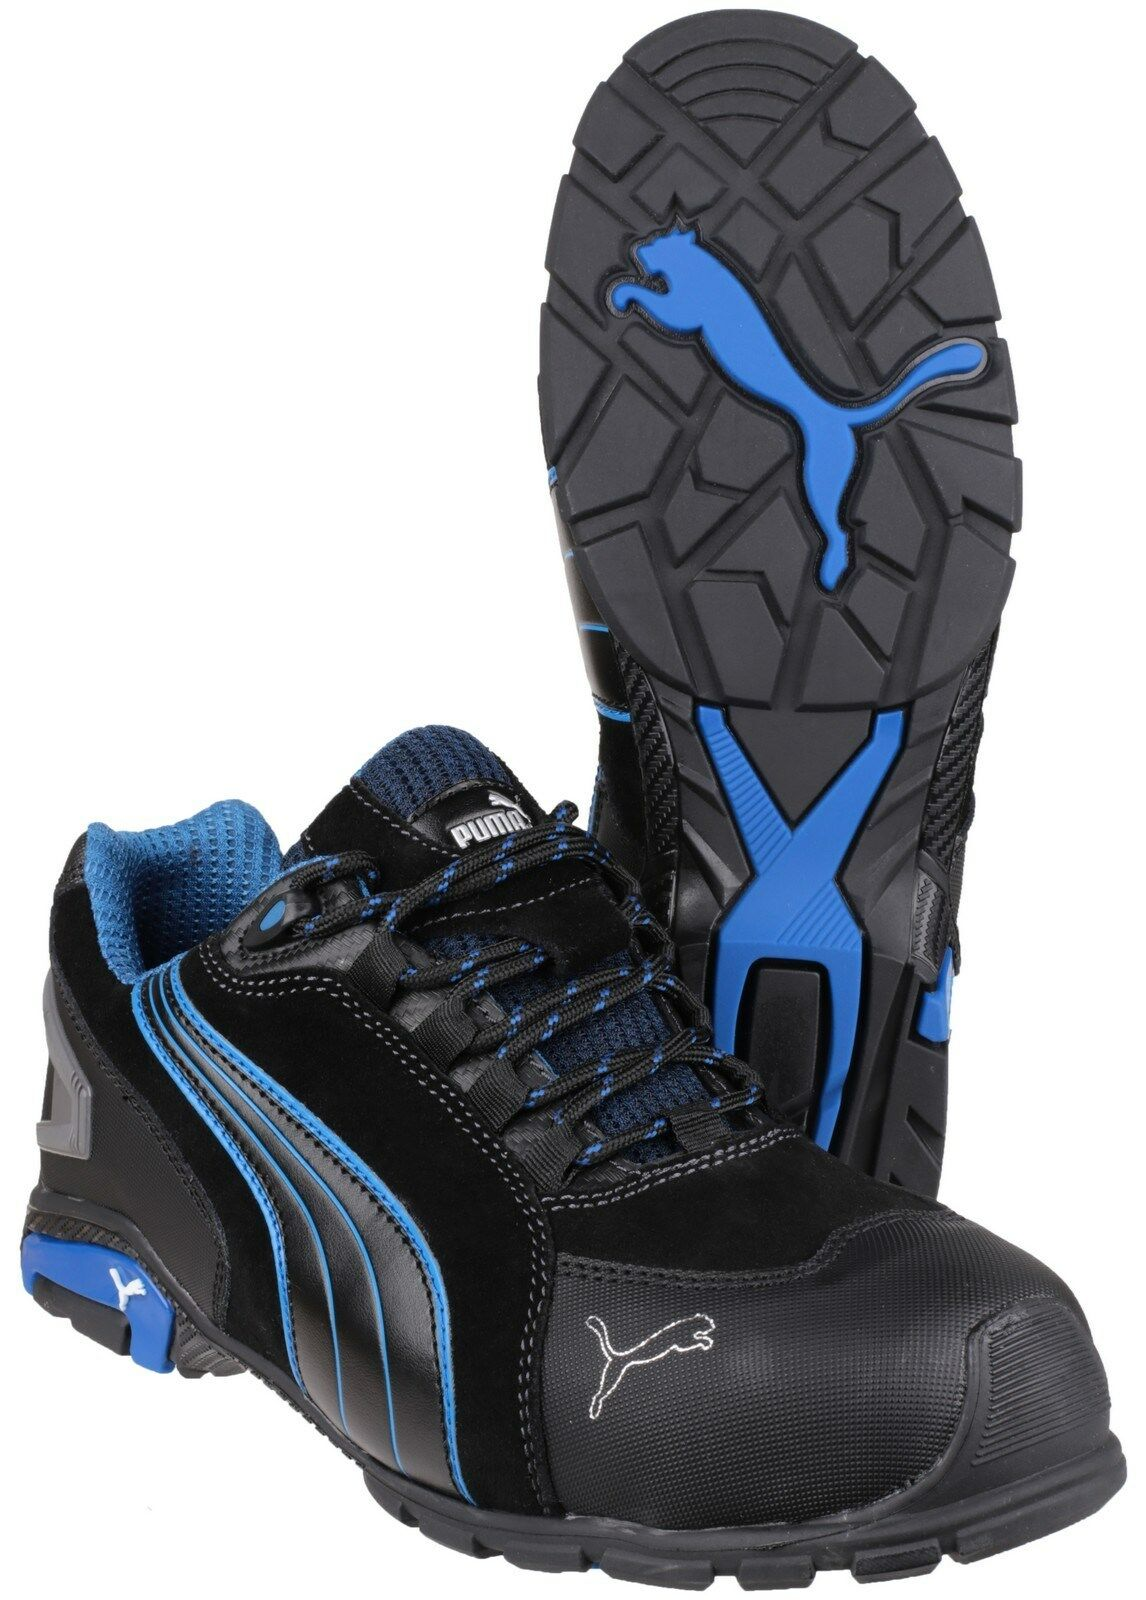 Puma Rio Black bluee Low Safety Mens Industrial Work Boots Trainers shoes UK6-13